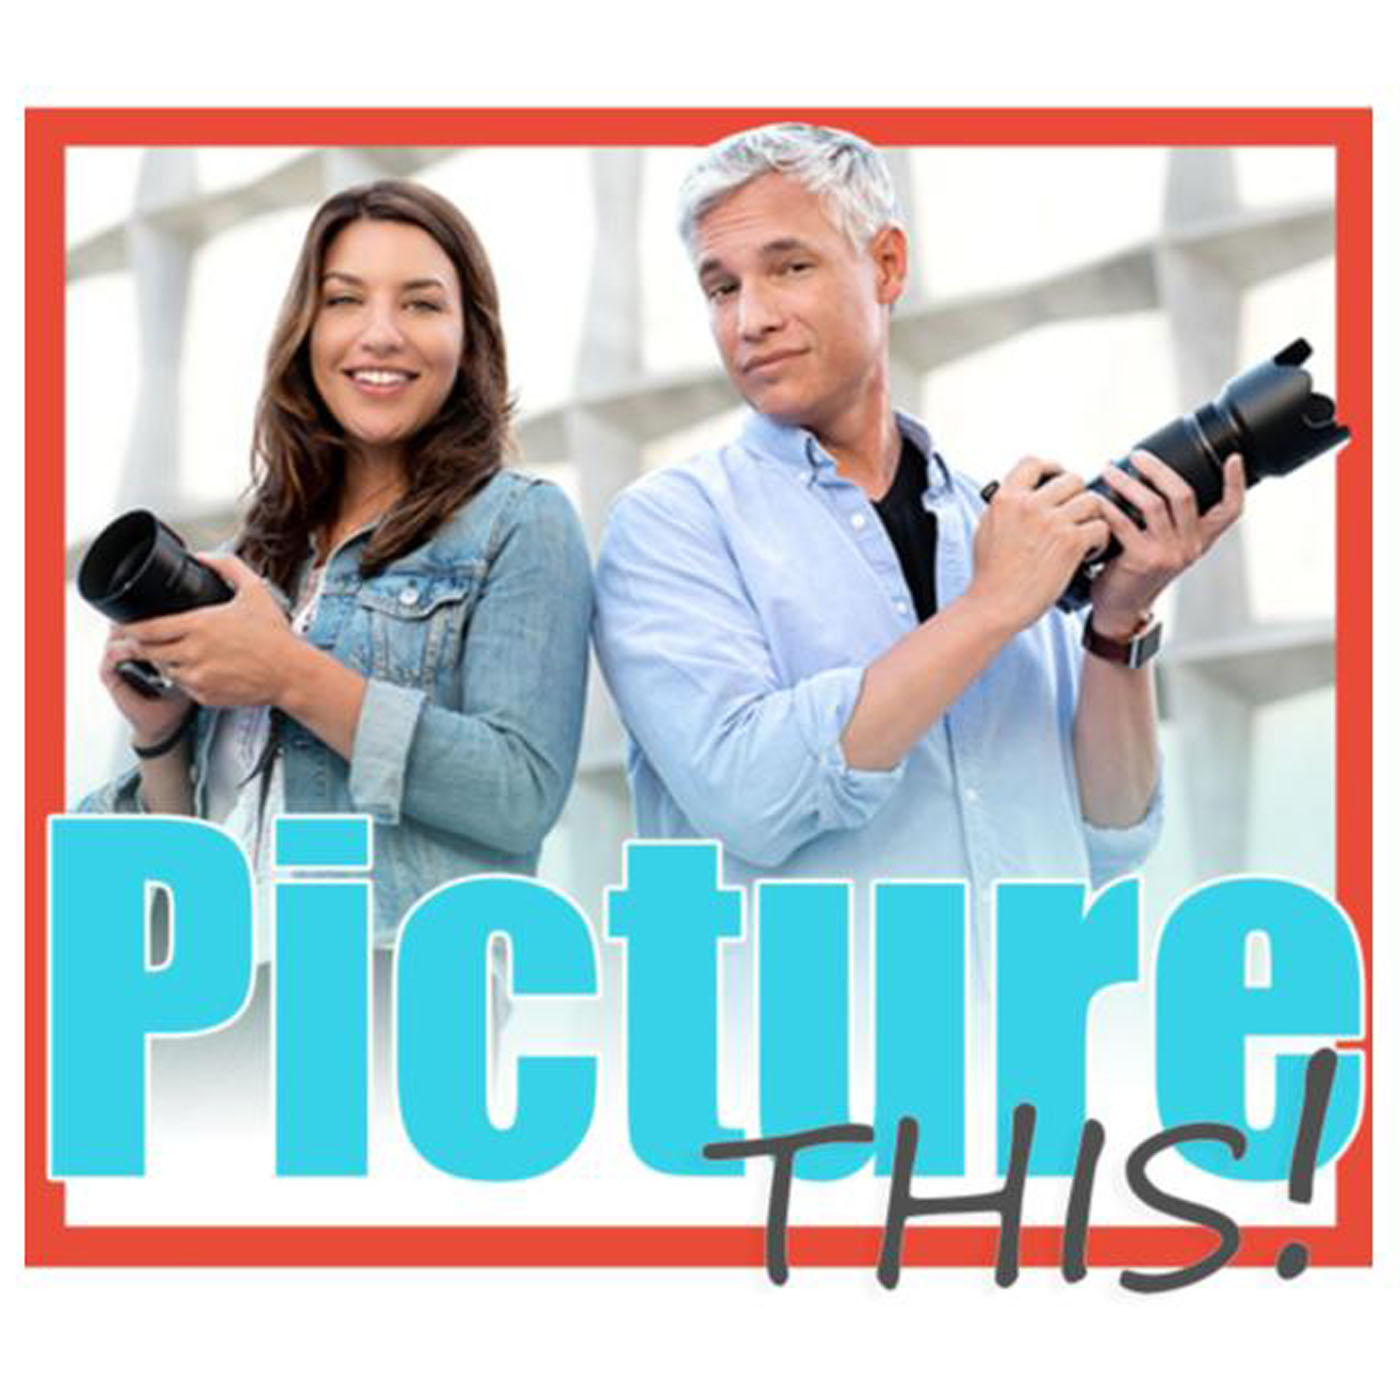 Your Photos NEED HELP!